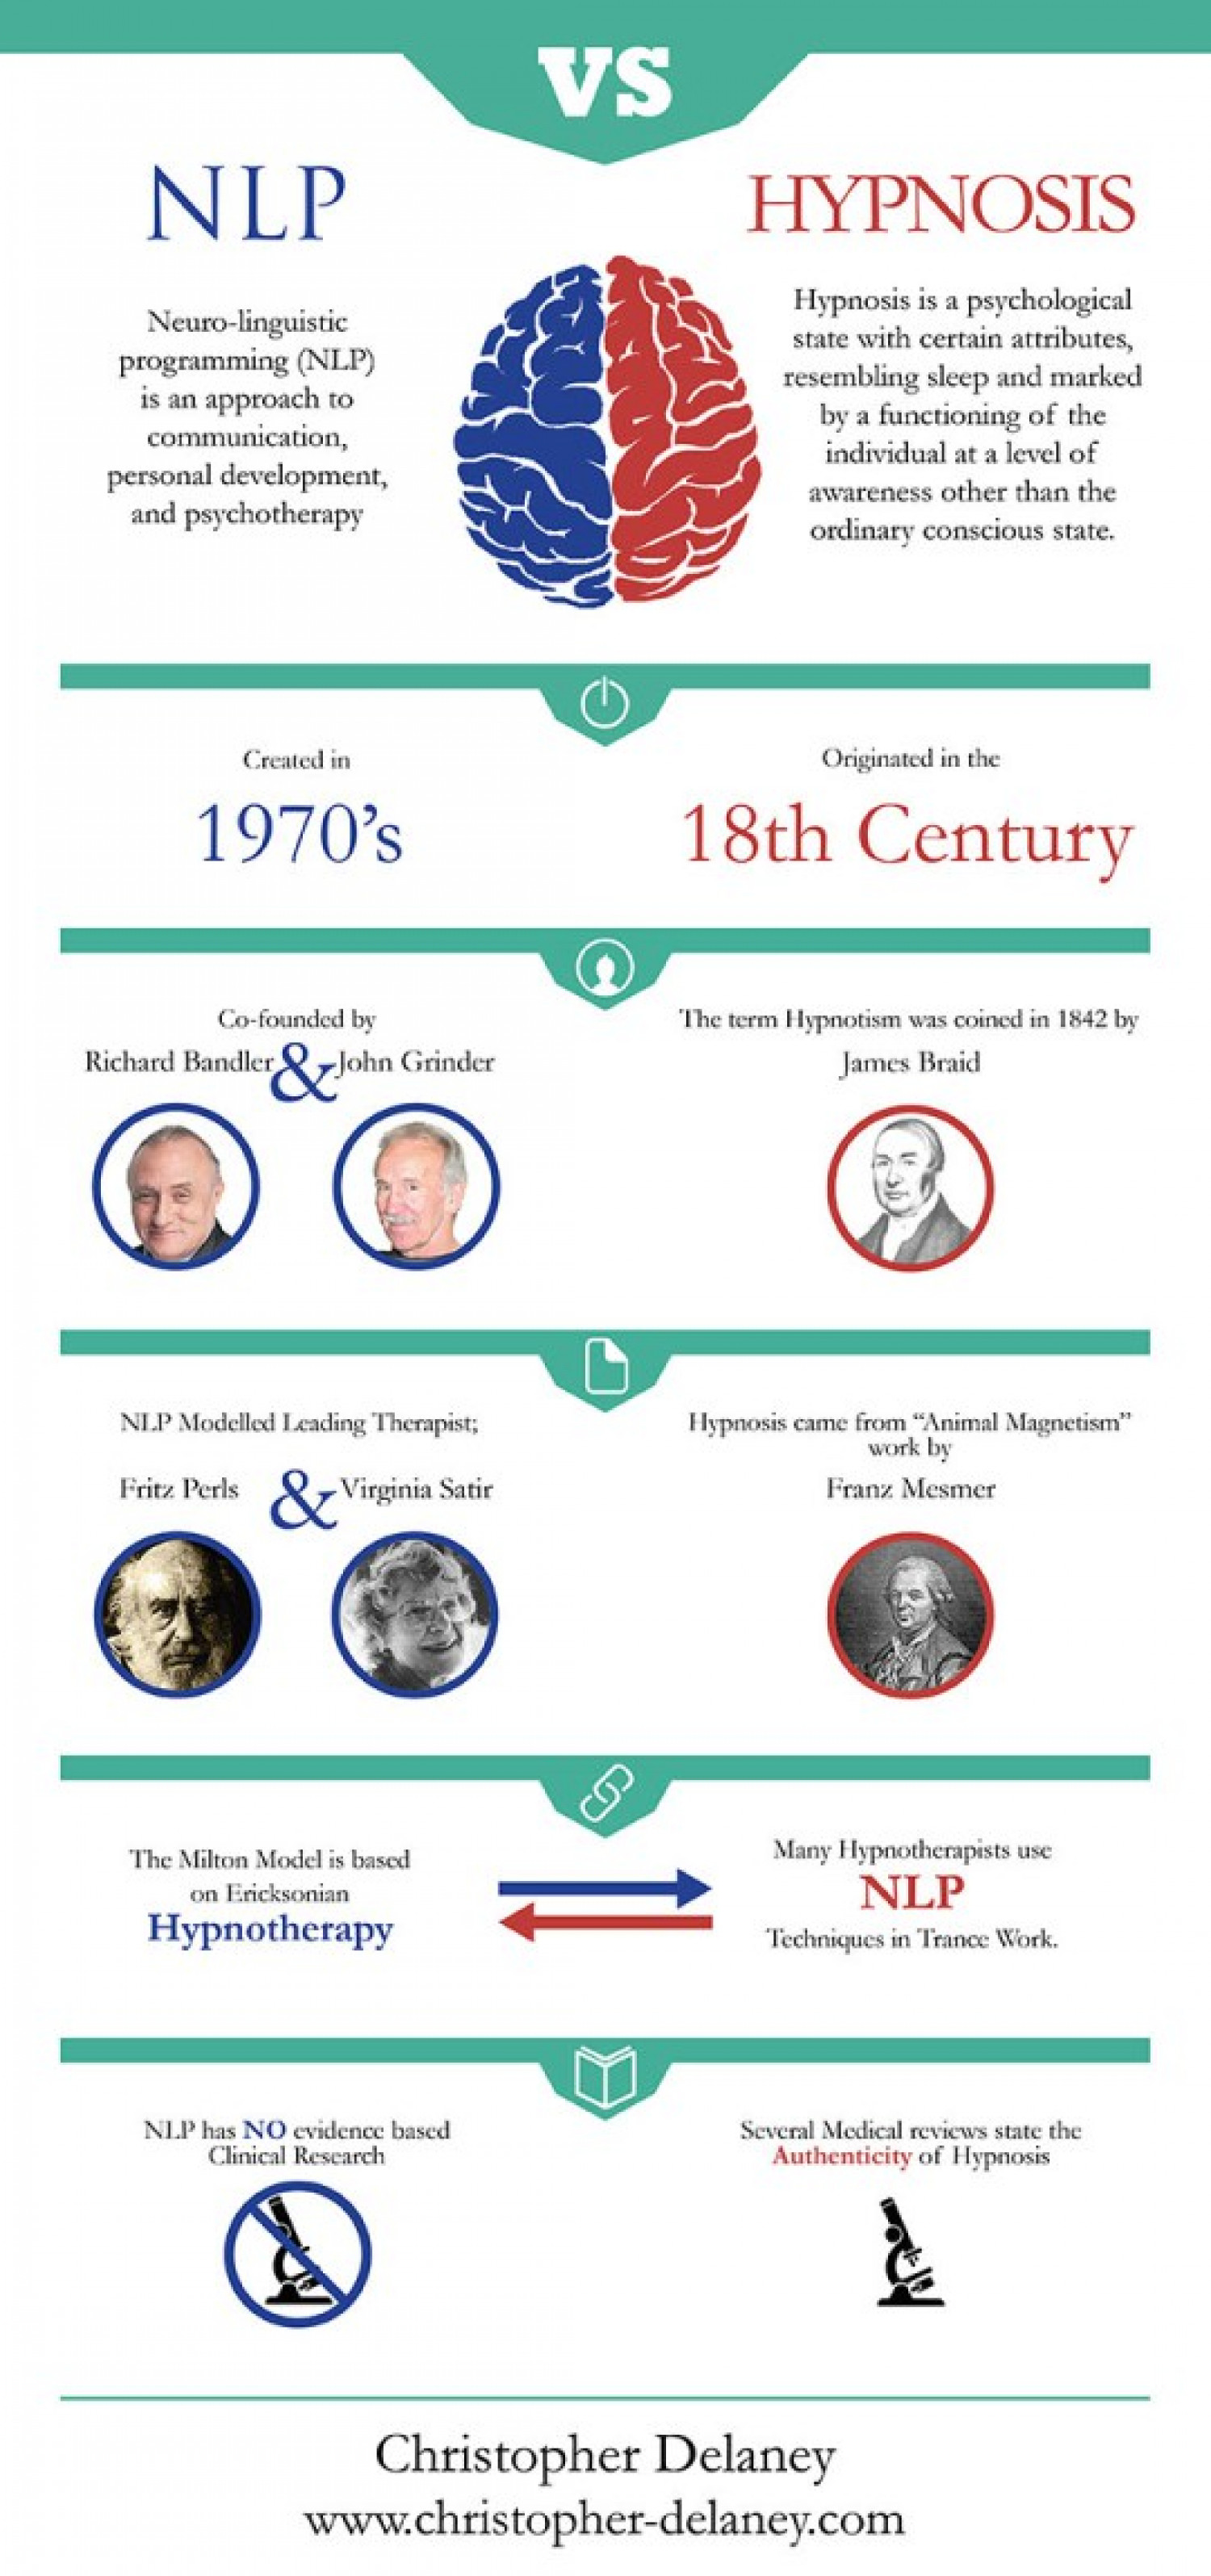 NLP Vs Hypnosis Infographic